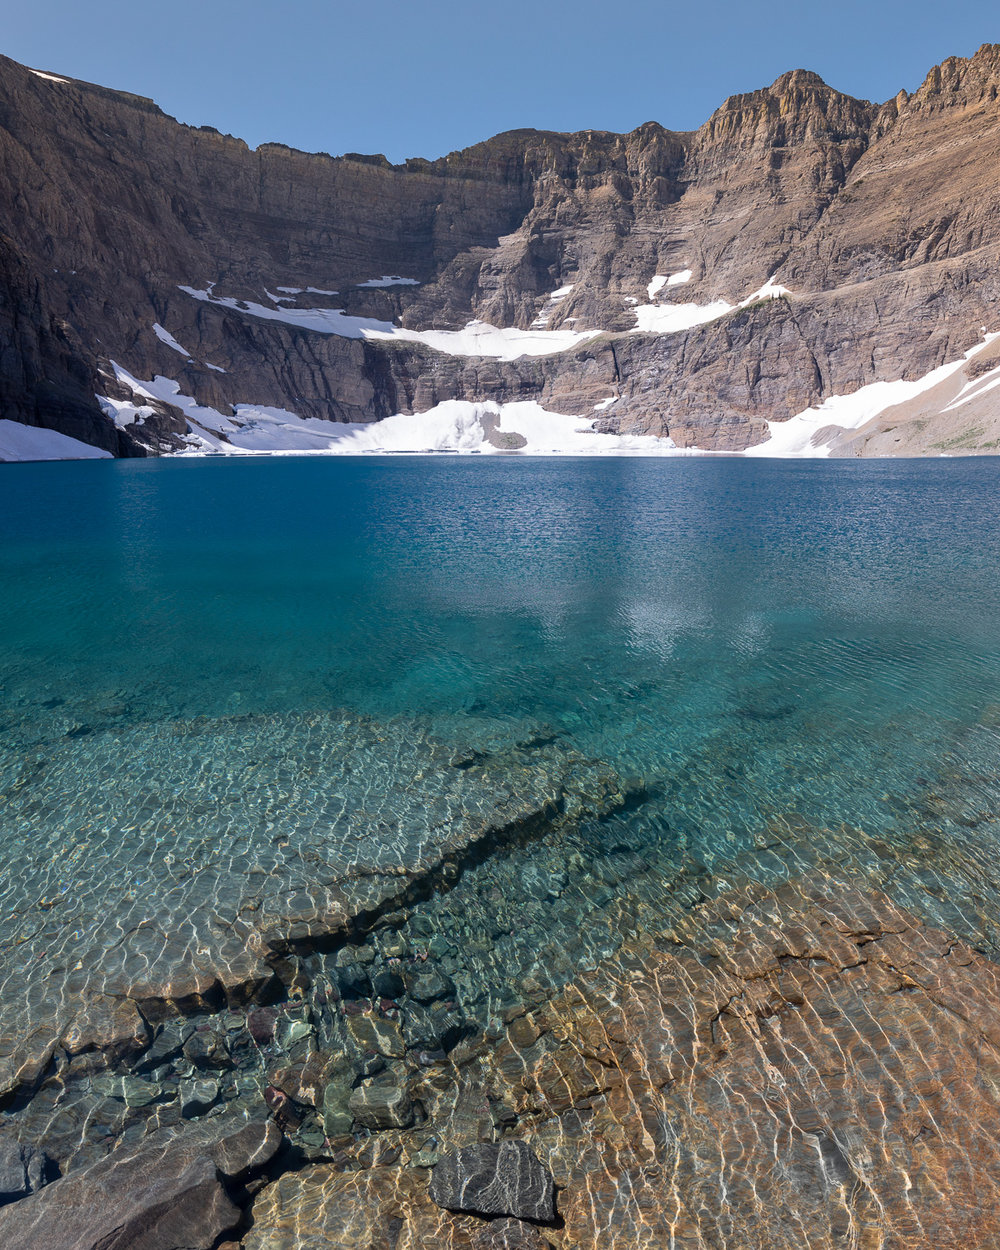 A vertorama (two images stitched together) of Iceberg Lake.